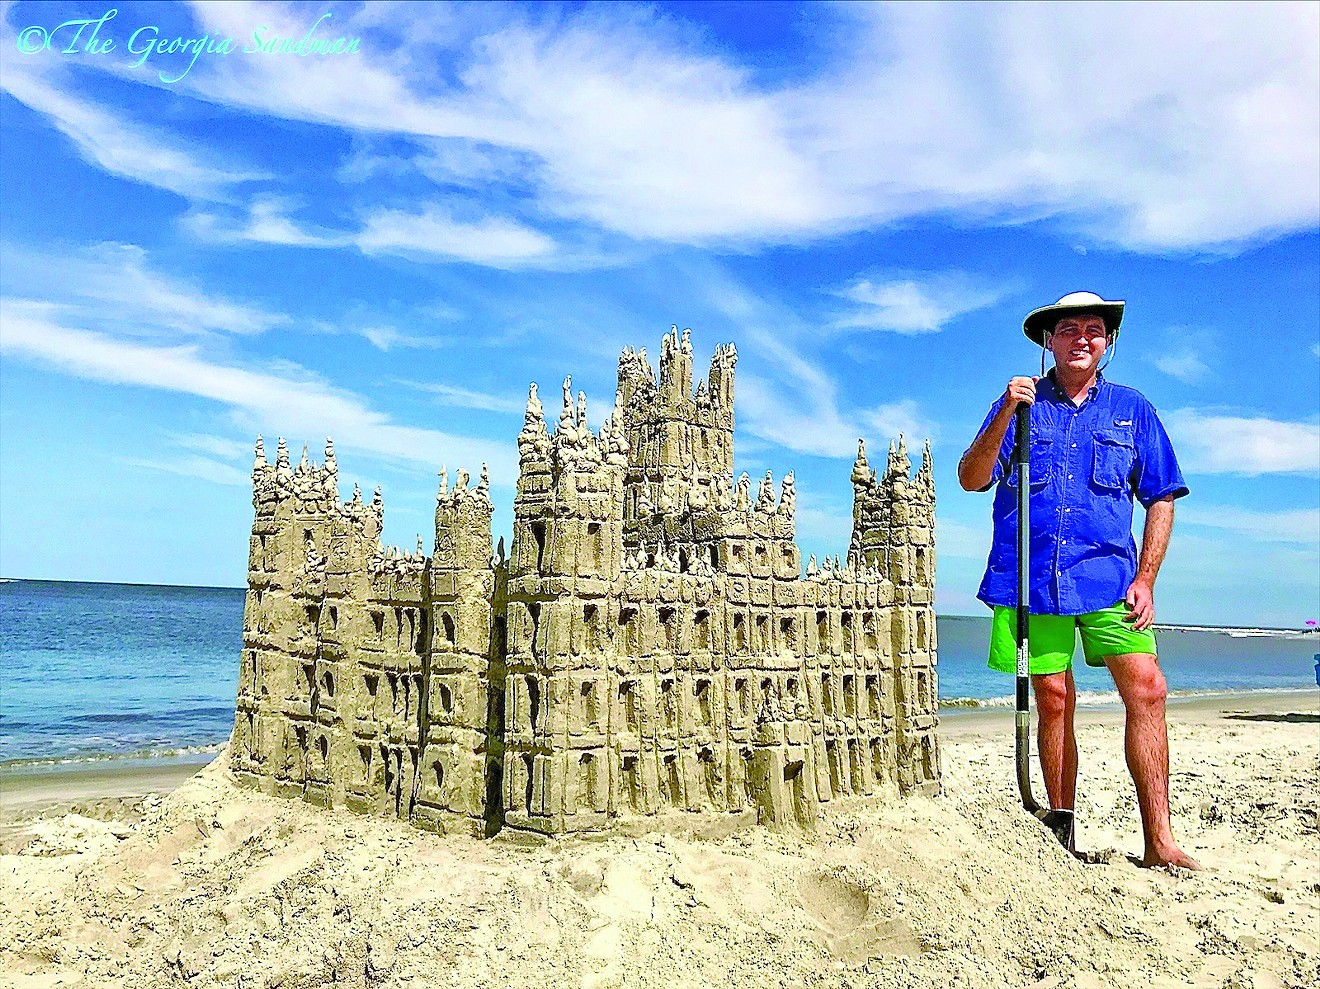 """""""The Georgia Sandman"""" Dylan Mulligan poses with one of his favorite sand-builds, Highclere Castle, the famous dwelling from the hit television program """"Downtown Abbey."""""""